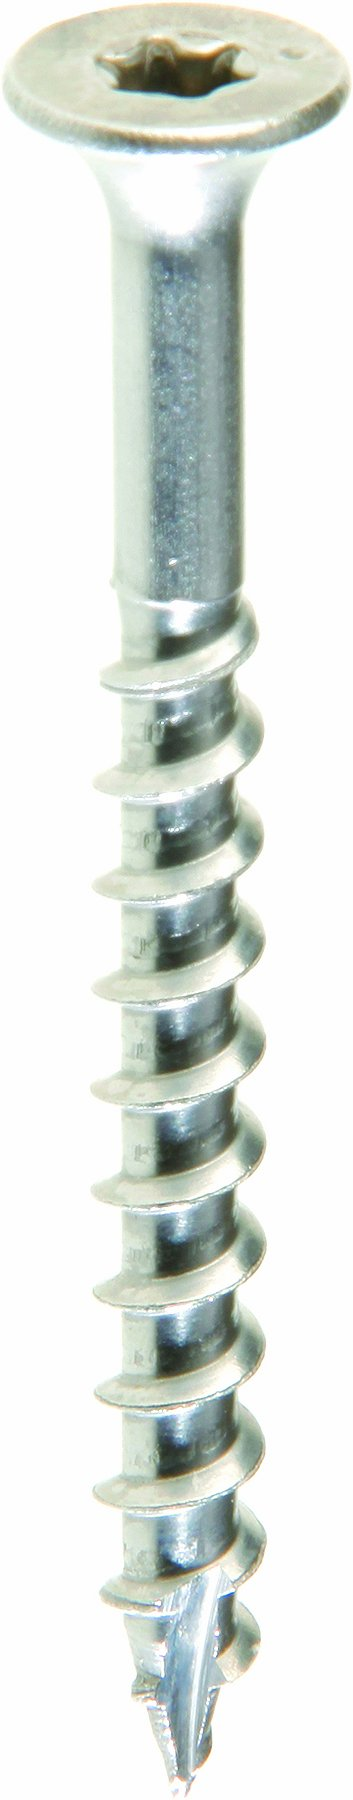 Grip Rite Prime Guard MAXS62695 Type 17 Point Deck Screw Number 8 by 2-Inch T20 Star Drive, Stainless Steel, 1-Pound Tub